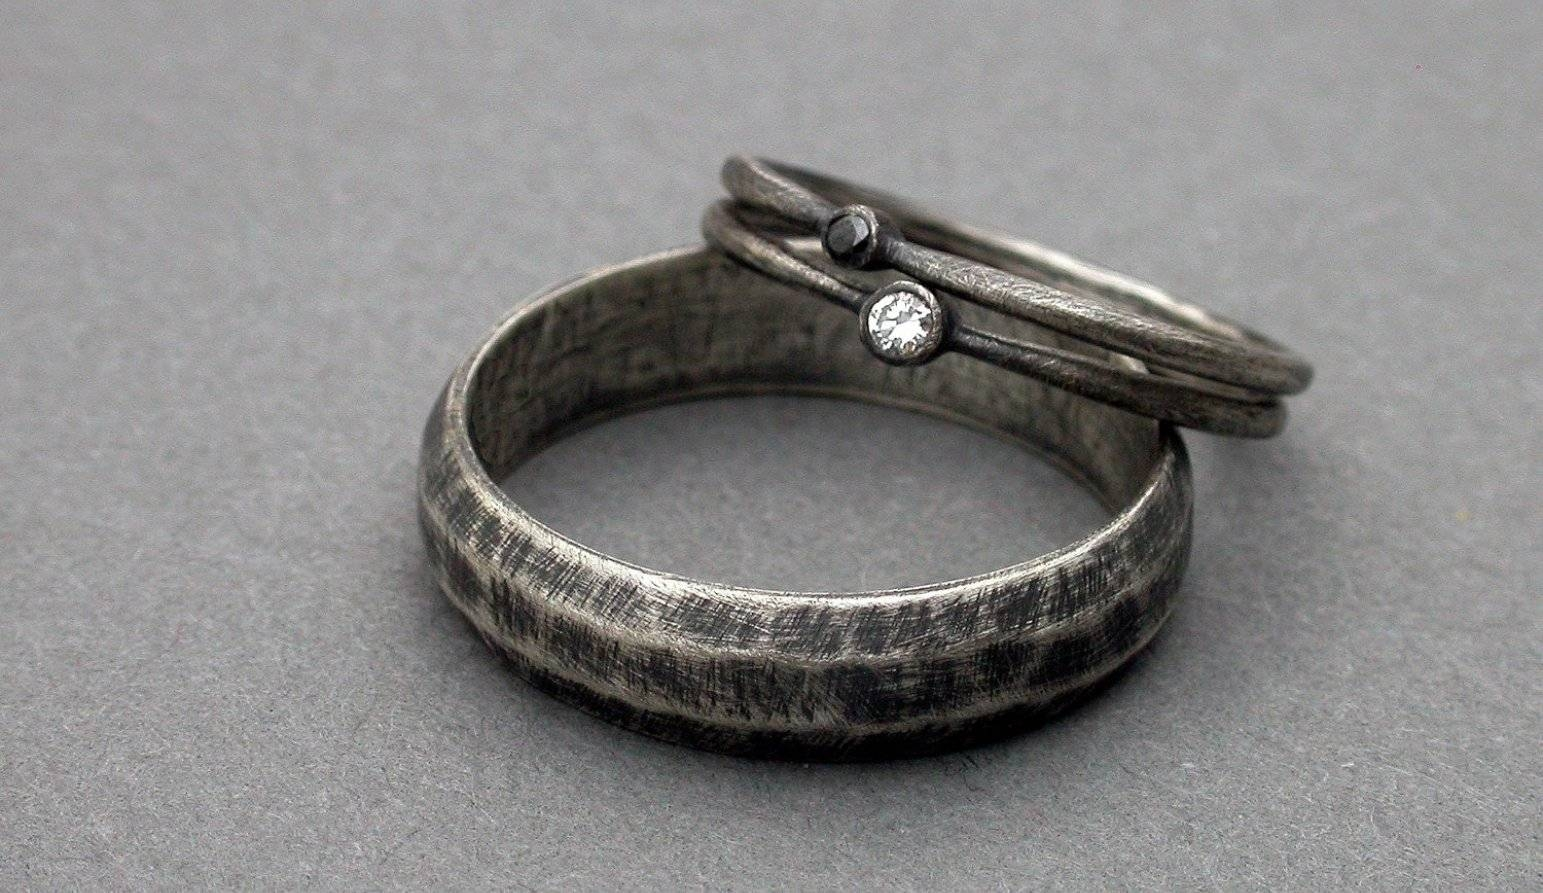 Photo Gallery of Unusual Wedding Rings Designs Viewing 4 of 15 Photos